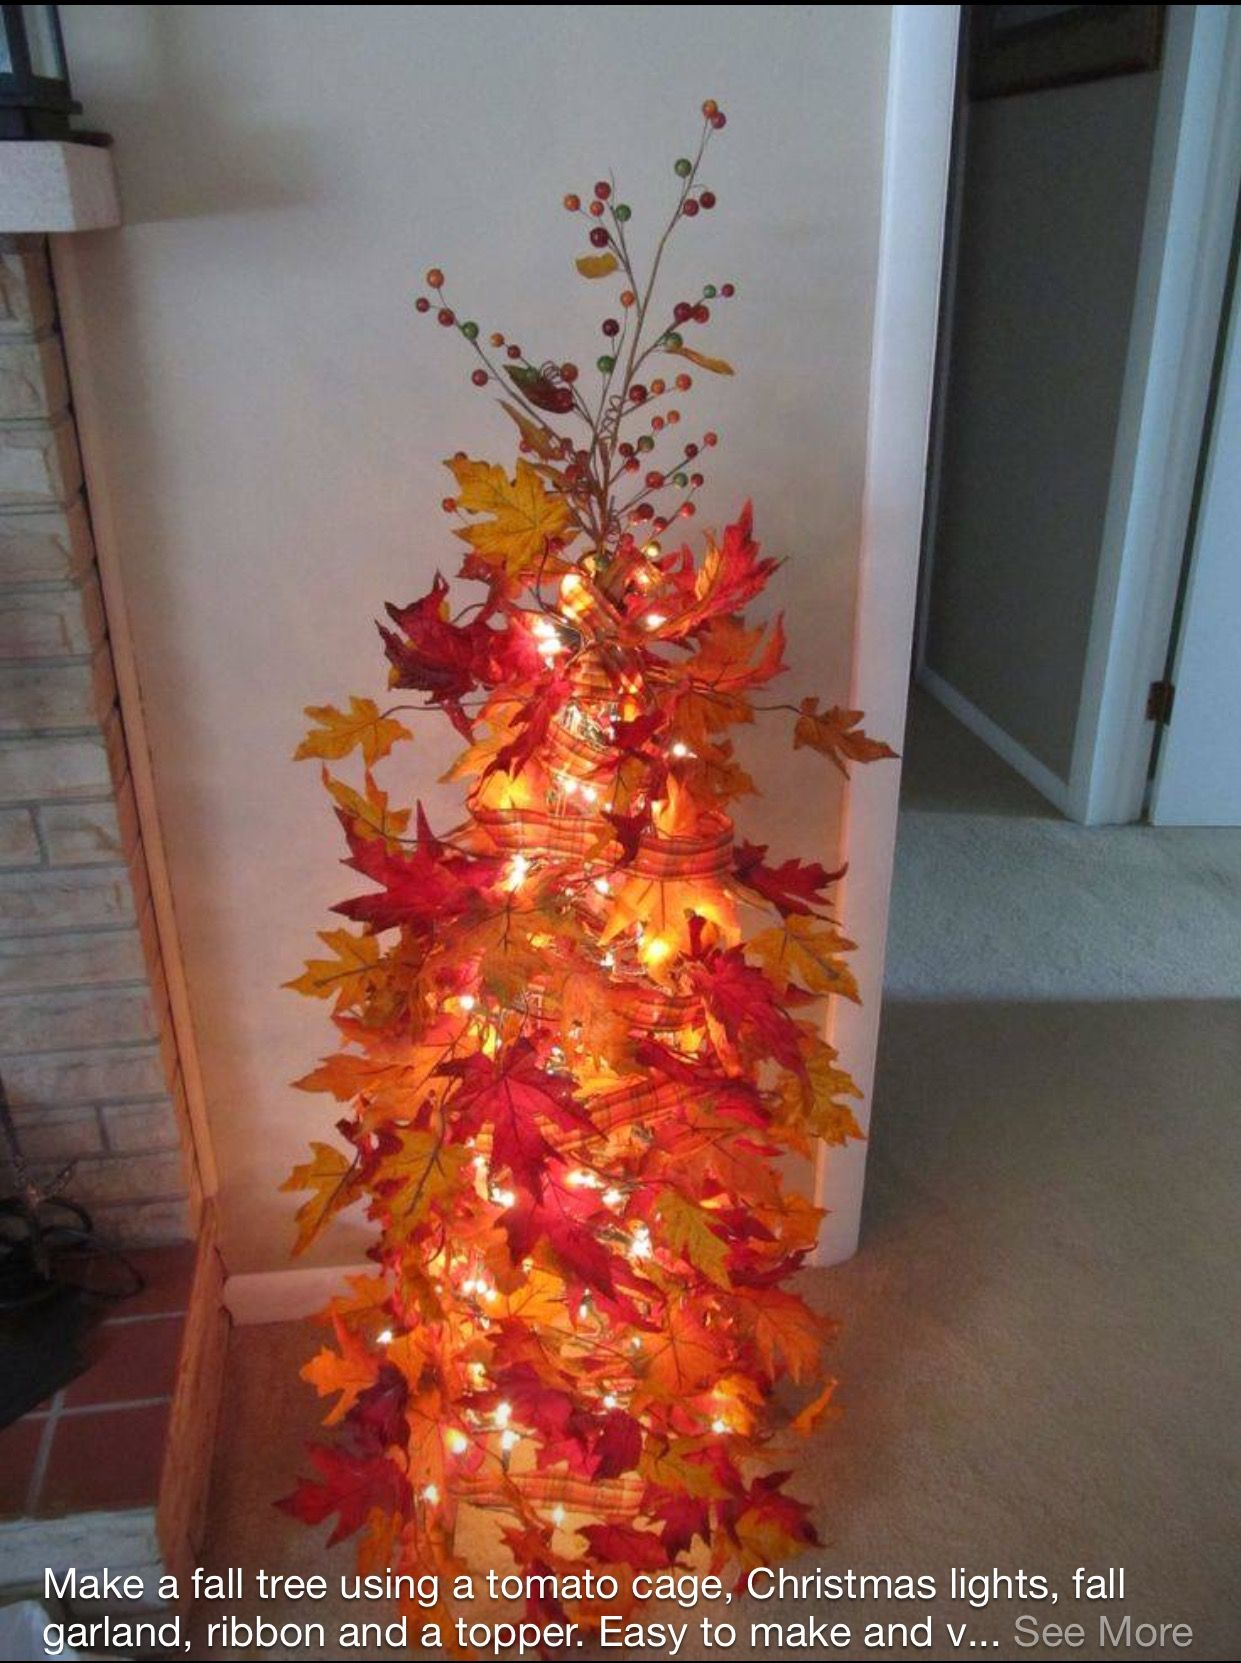 Make a Fall Tree with a Tomato Cage Home Depot Lowes Walmart a